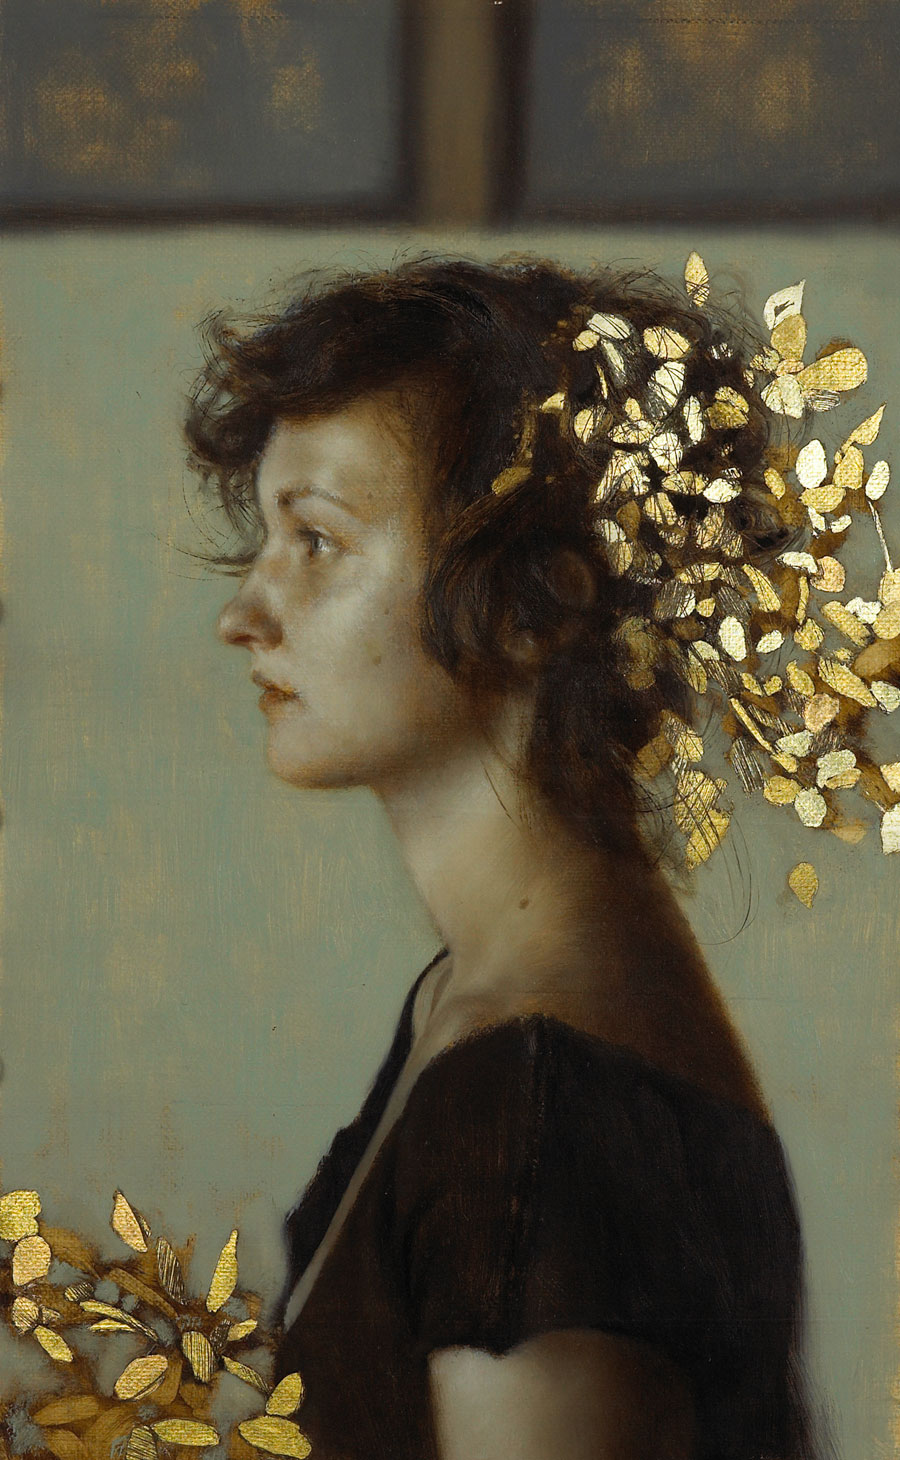 July.   12 x 8 inches.  Oil and gold leaf on linen.  Private collection.